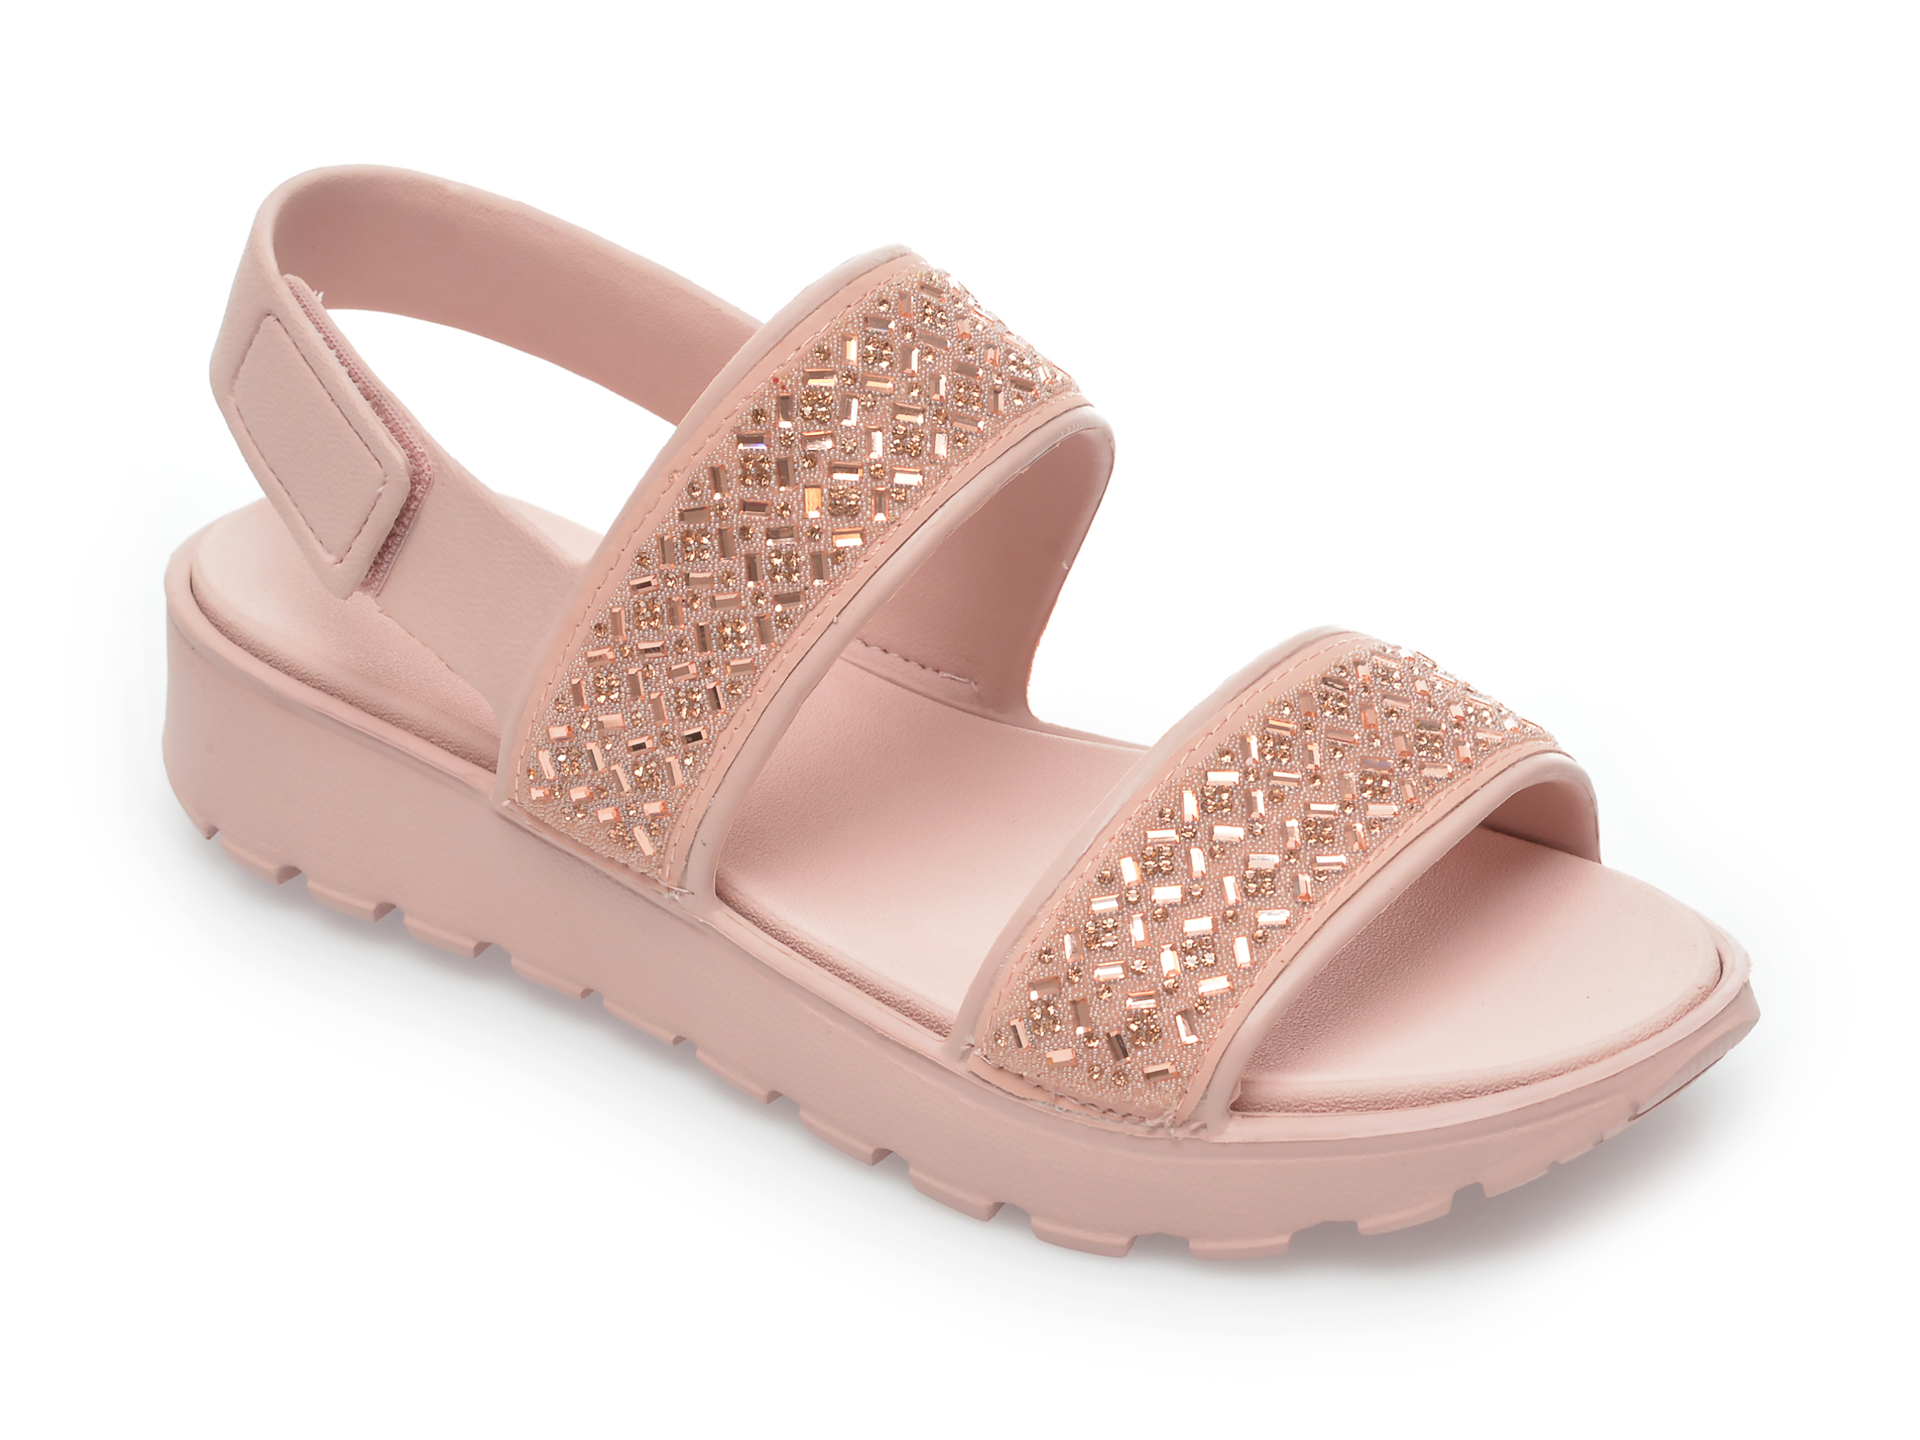 Sandale SKECHERS roz, Footsteps Glam Party, din piele ecologica imagine otter.ro 2021